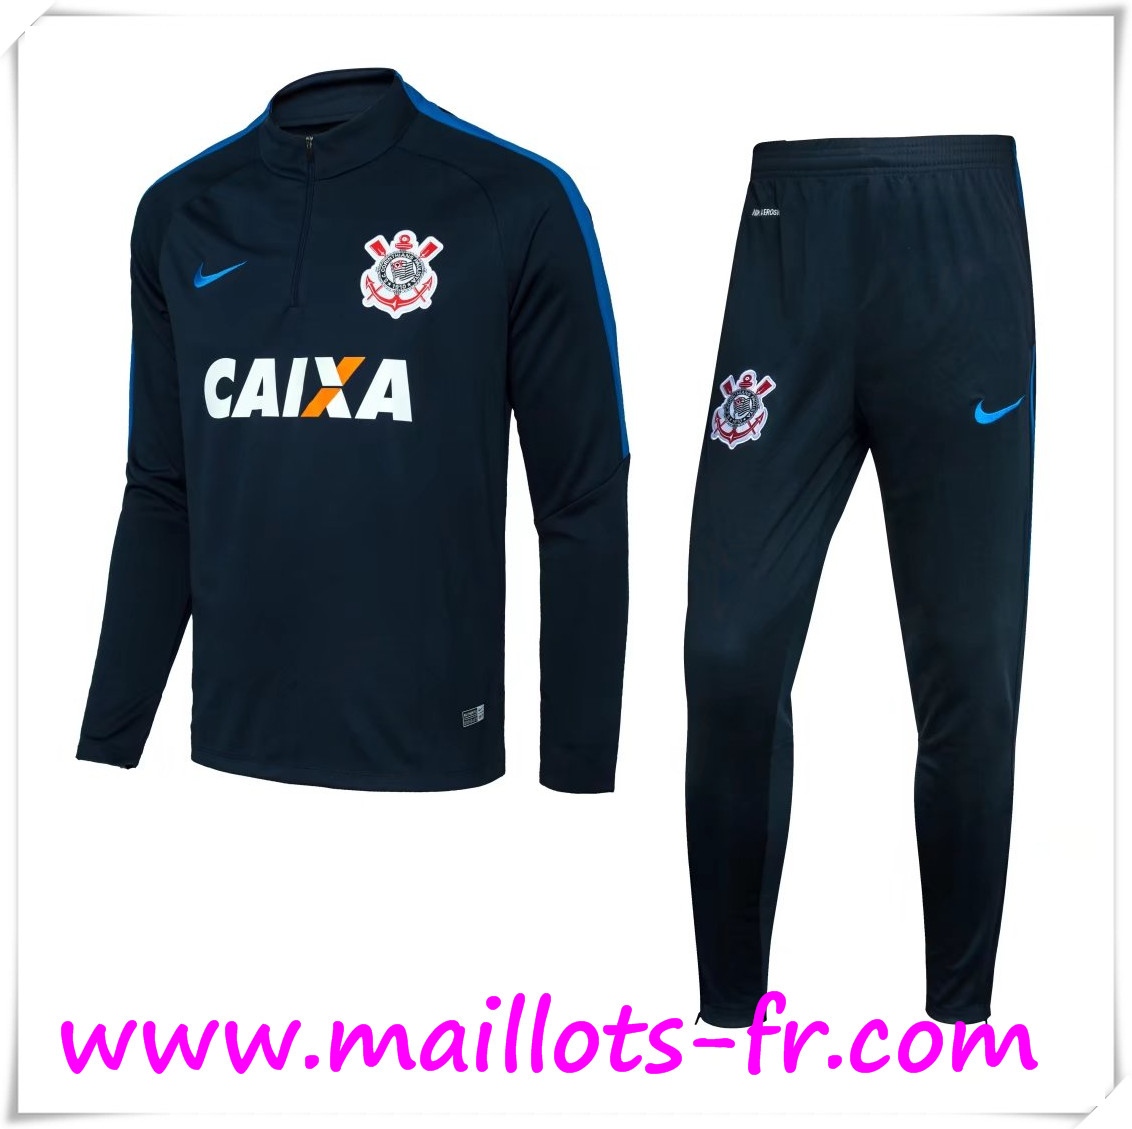 maillots-fr Survetement de Foot Corinthians Noir 2016 2017 Ensemble